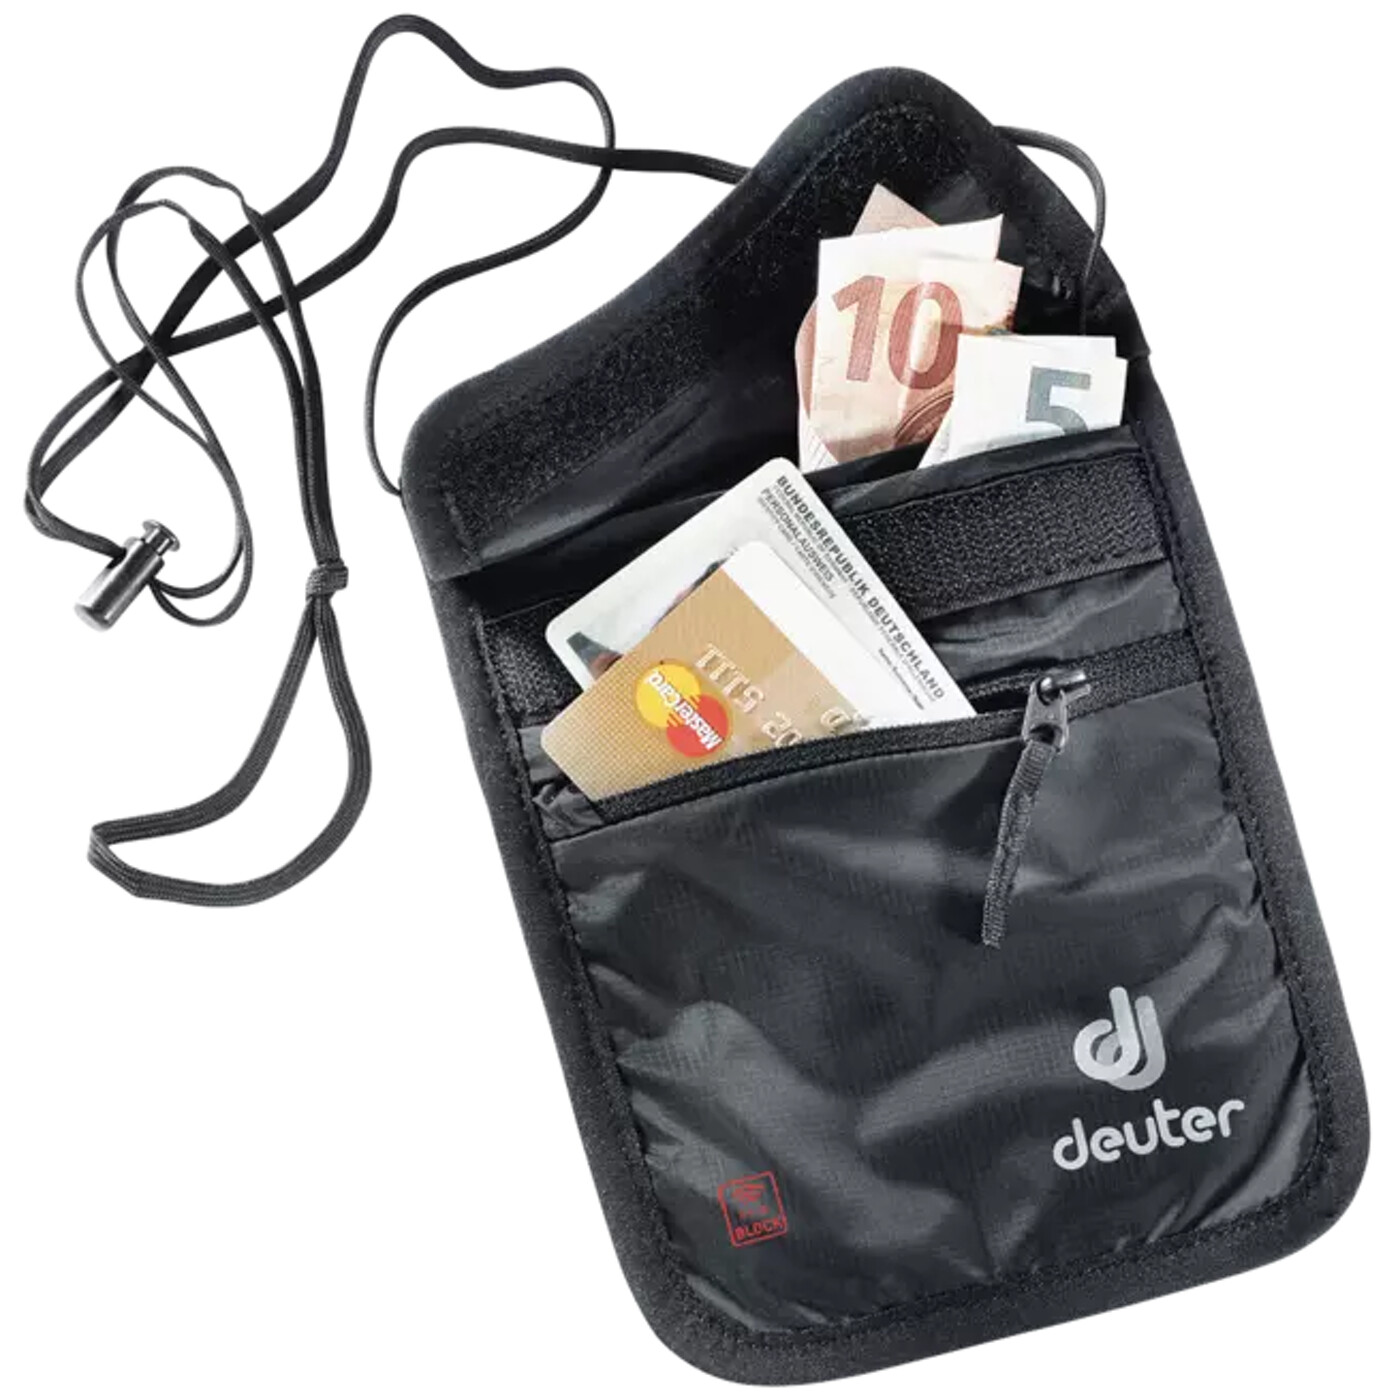 DEUTER Reiseaccessoire Security Wallet II RFID BLOCK